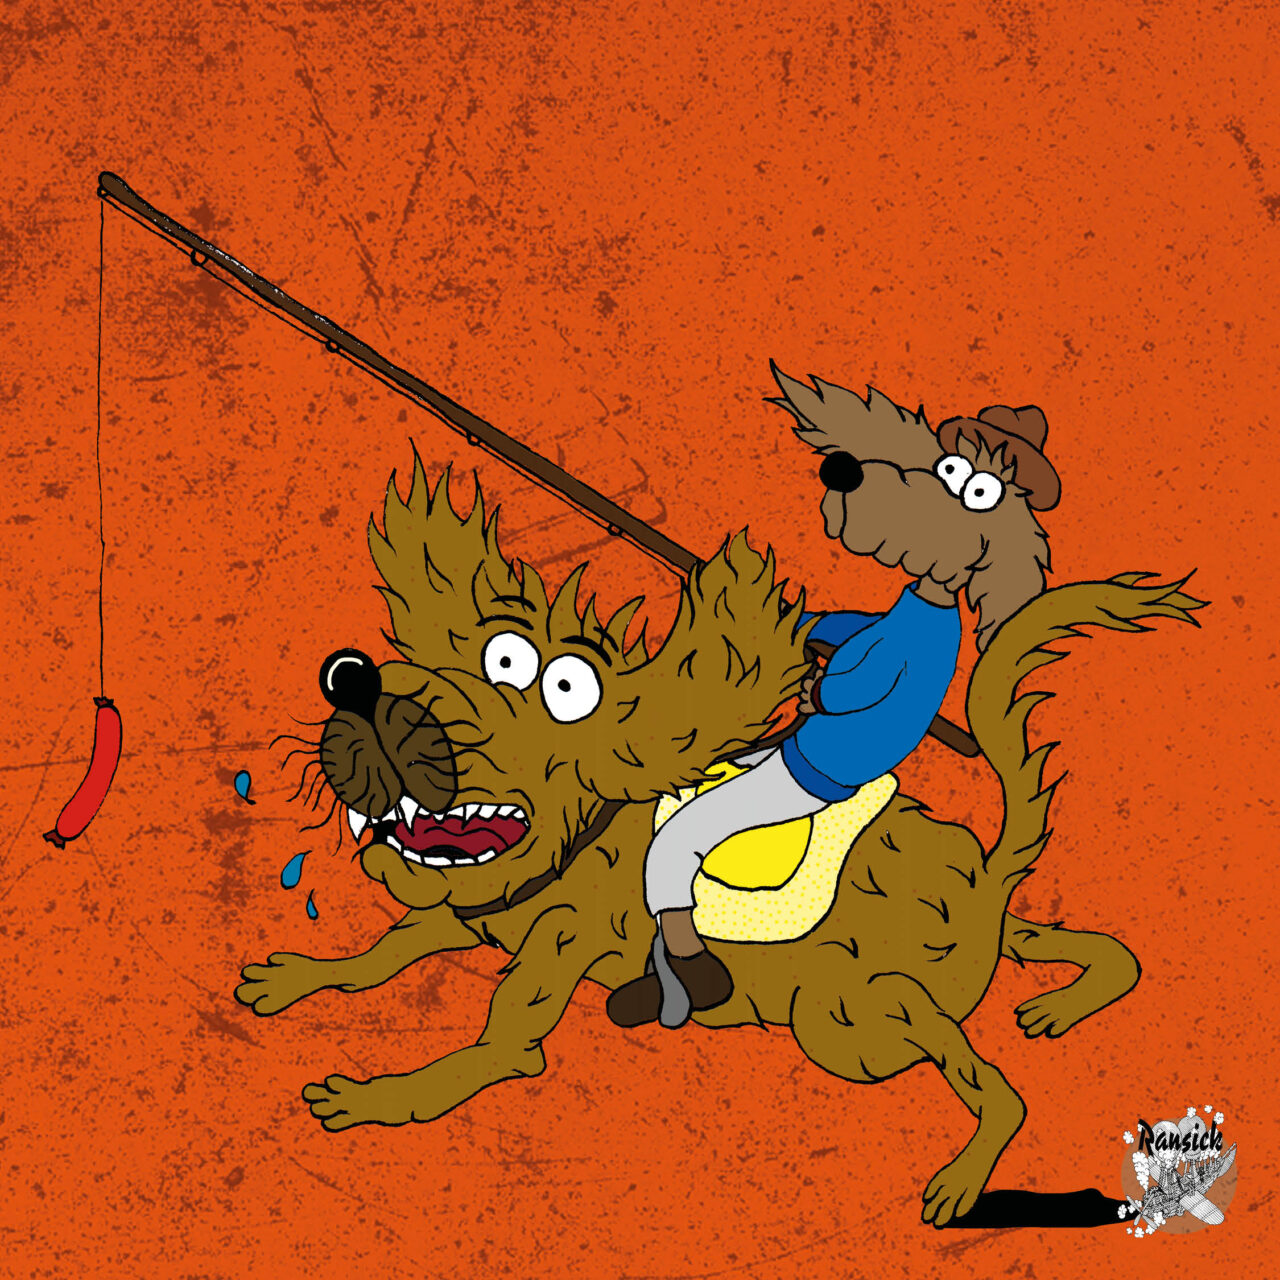 Rattenhund - Illustration - Ransicks wimmelige Welten - Illustration und Grafikdesign Jonas Gallenkamp